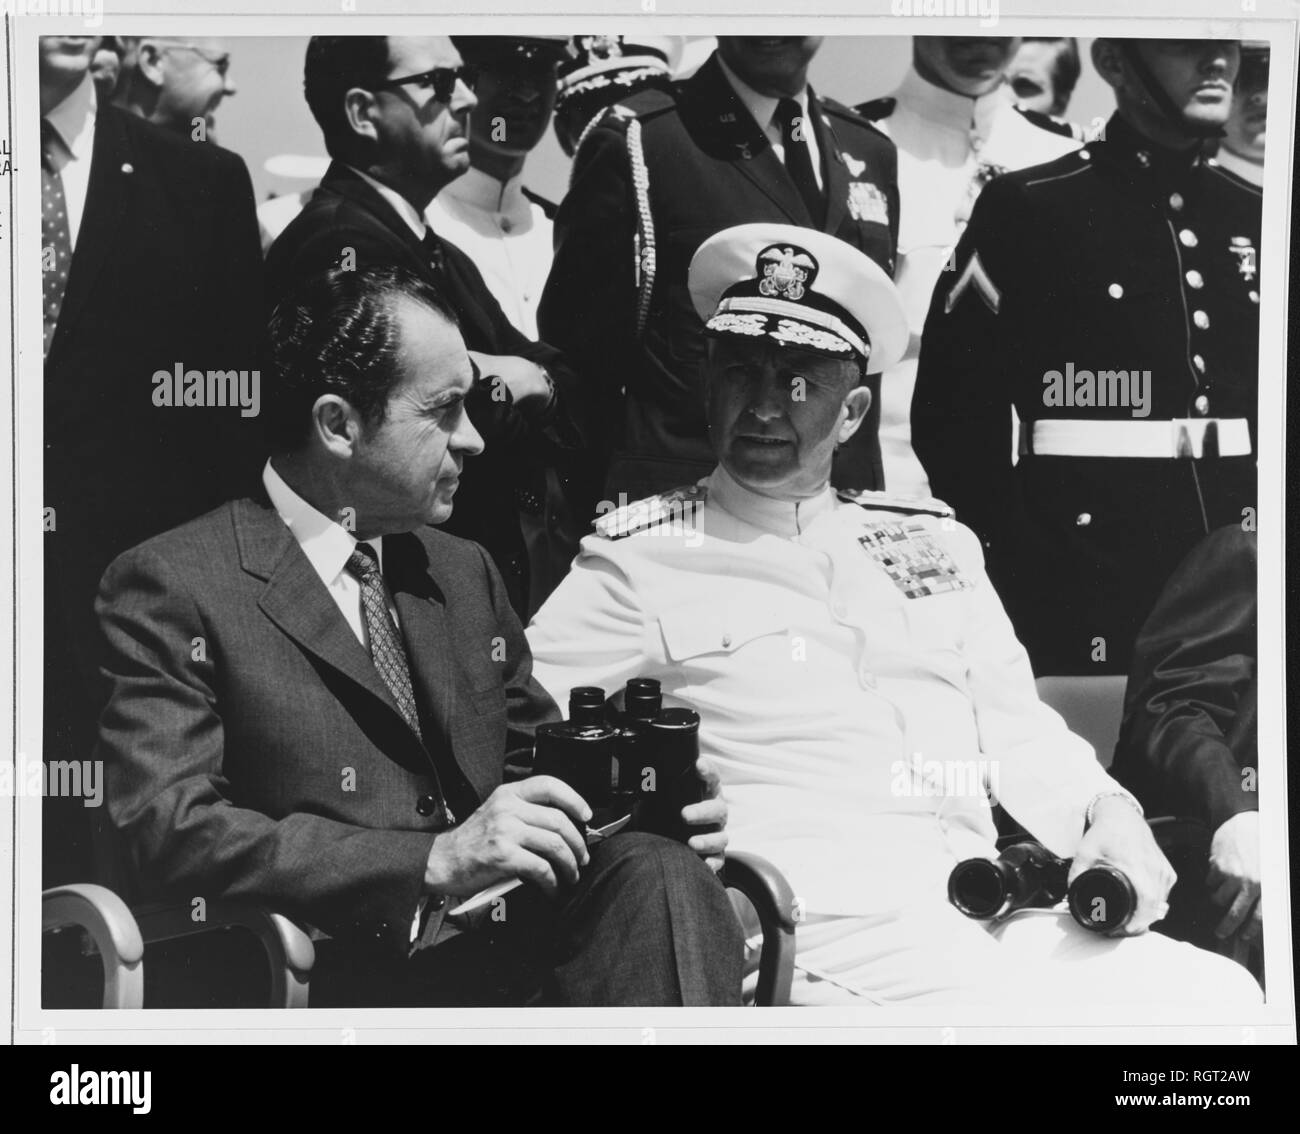 Photo #: K-72713  President Richard M. Nixon (left), with , Chief of Naval Operations  Witness air and sea power demonstrations from the flight deck of USS Saratoga (CVA-60), in the Atlantic Ocean, May 1969. Photographed by PH3 Philip J. Fraga.  Official U.S. Navy Photograph. Stock Photo